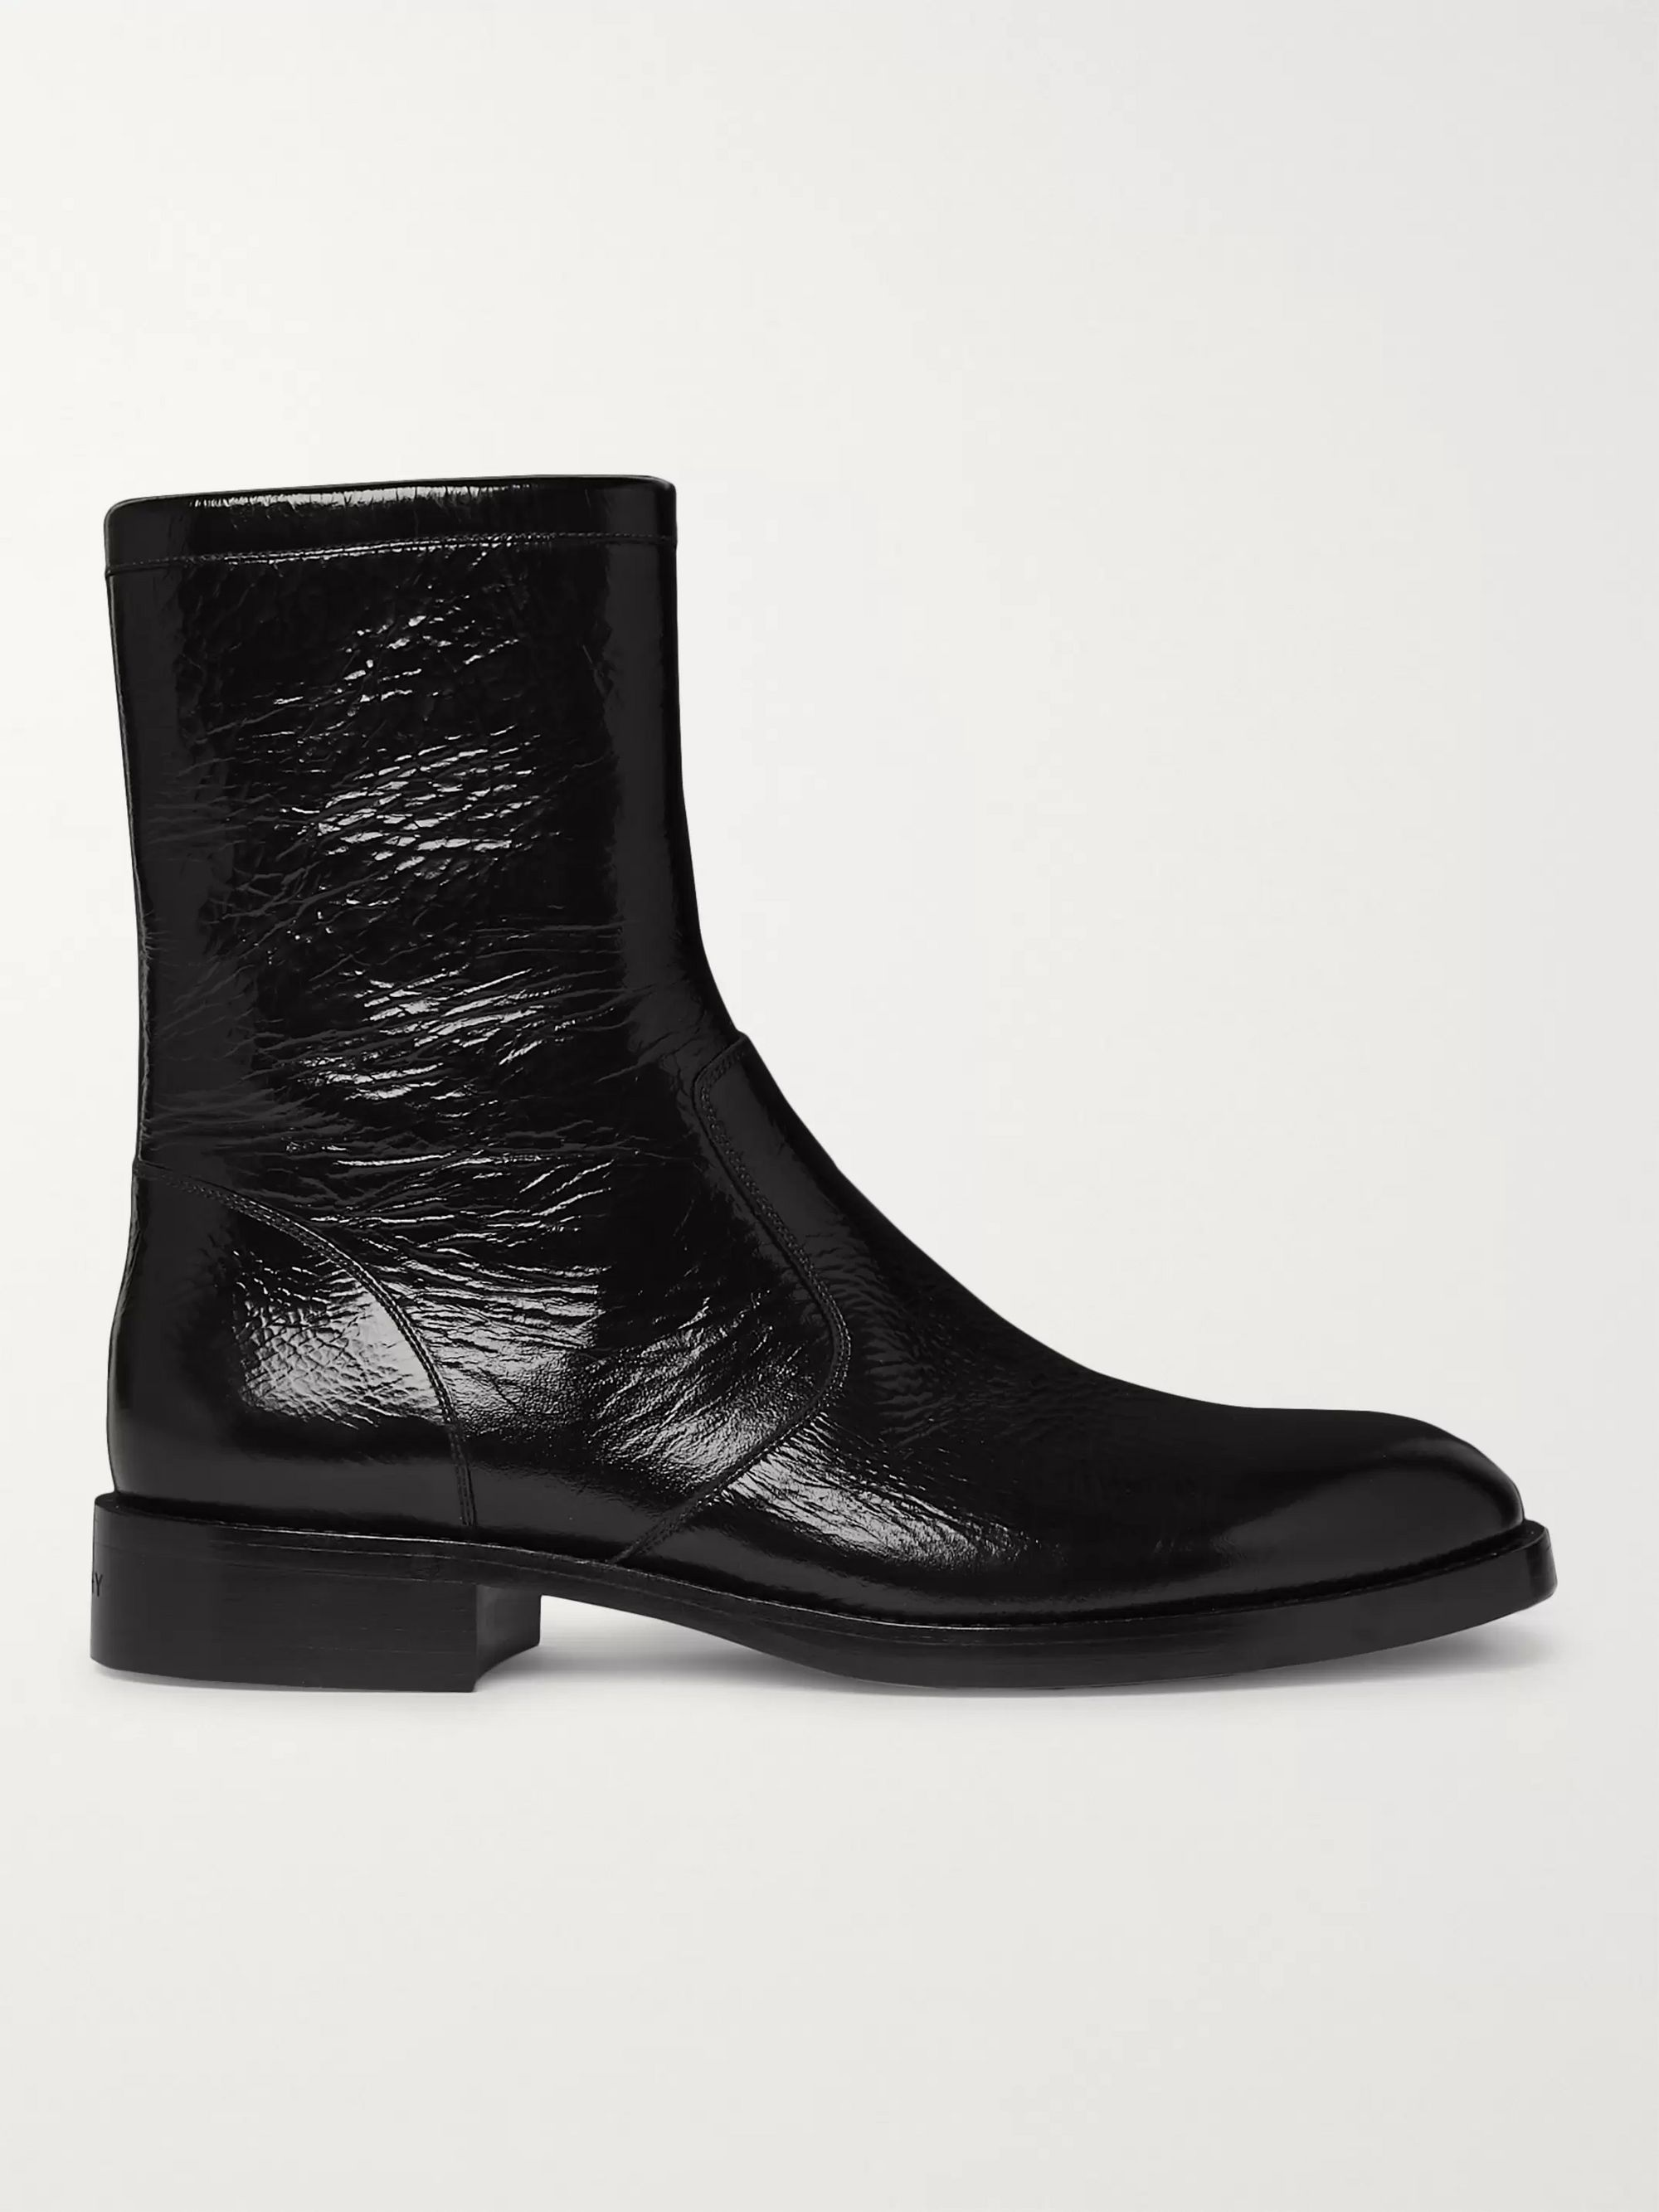 Givenchy Cruz Cracked Patent-Leather Boots